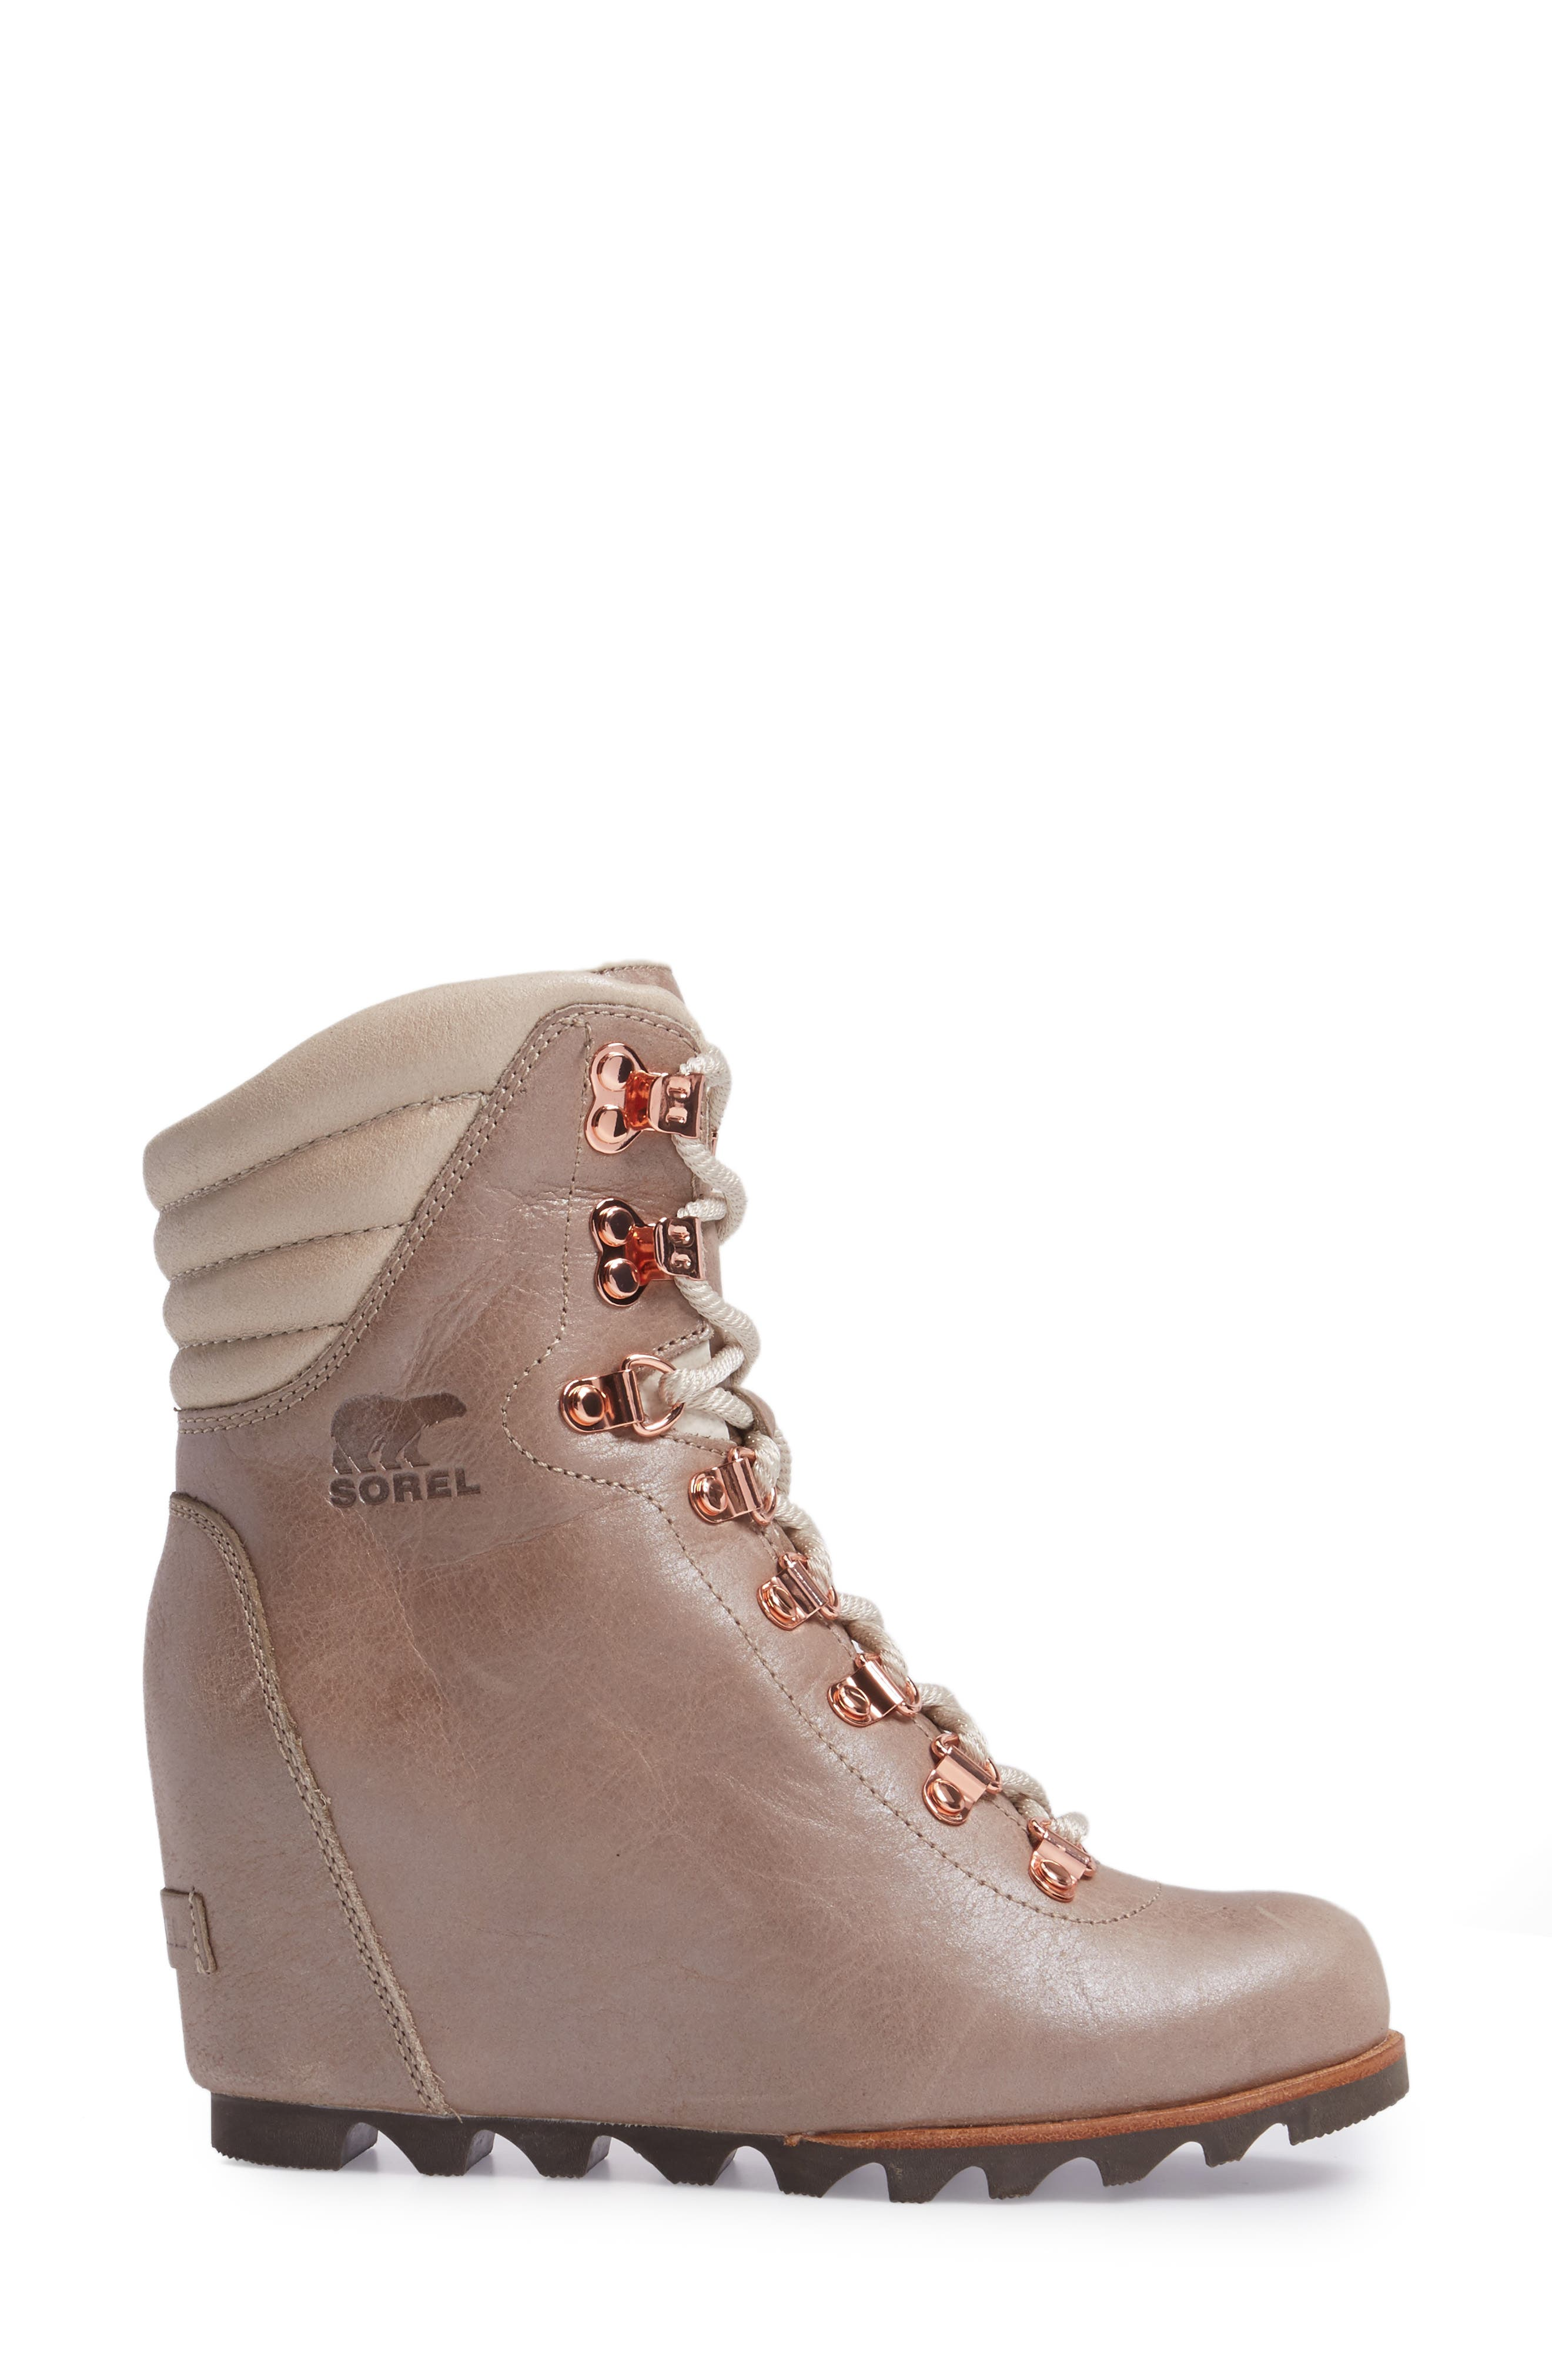 'Conquest' Waterproof Wedge Boot,                             Alternate thumbnail 15, color,